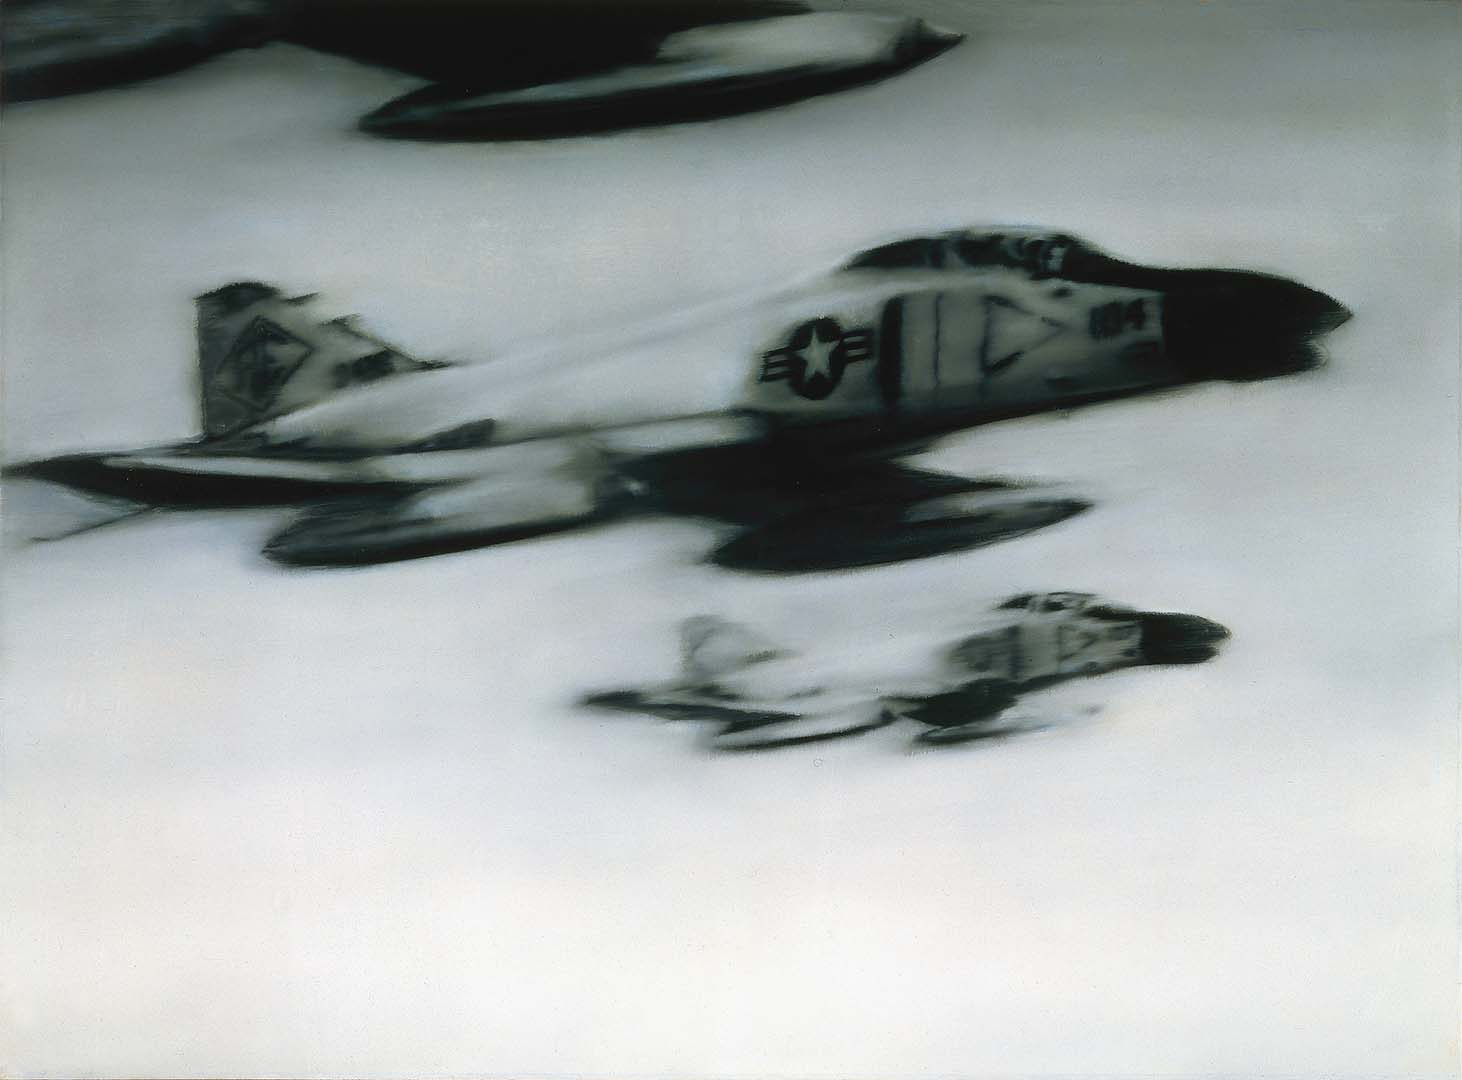 Gerhard Richter, Phantom Interceptors, 1964. Oil on canvas, 140 x 190 cm